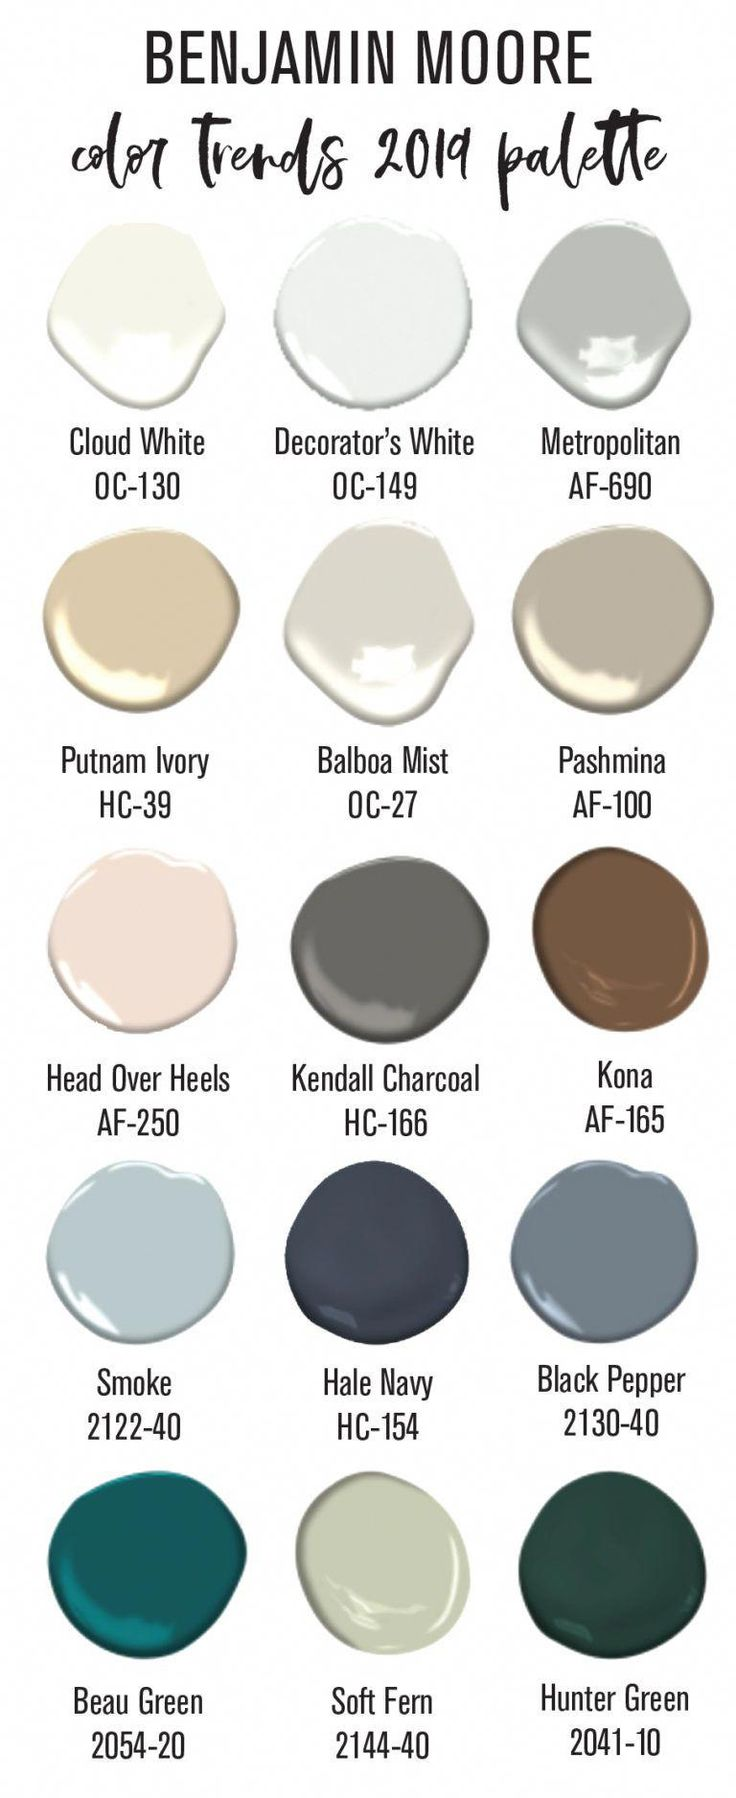 benjamin moore 2019 color palette construction2style on benjamin moore paints colors id=13255